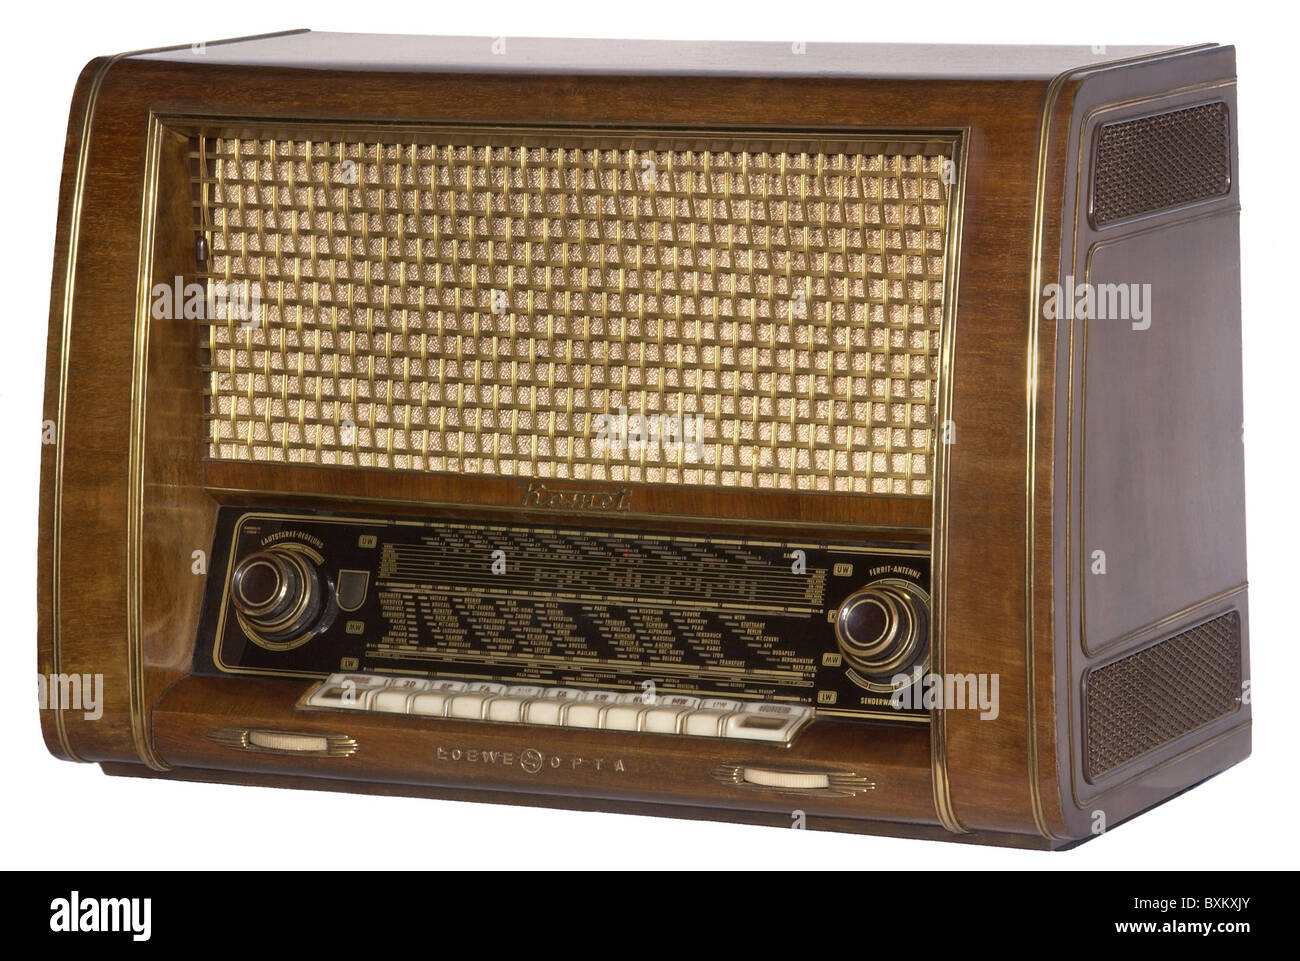 broadcast, radio set, Loewe-Opta Komet, Germany, 1995, Additional-Rights-Clearences-NA - Stock Image